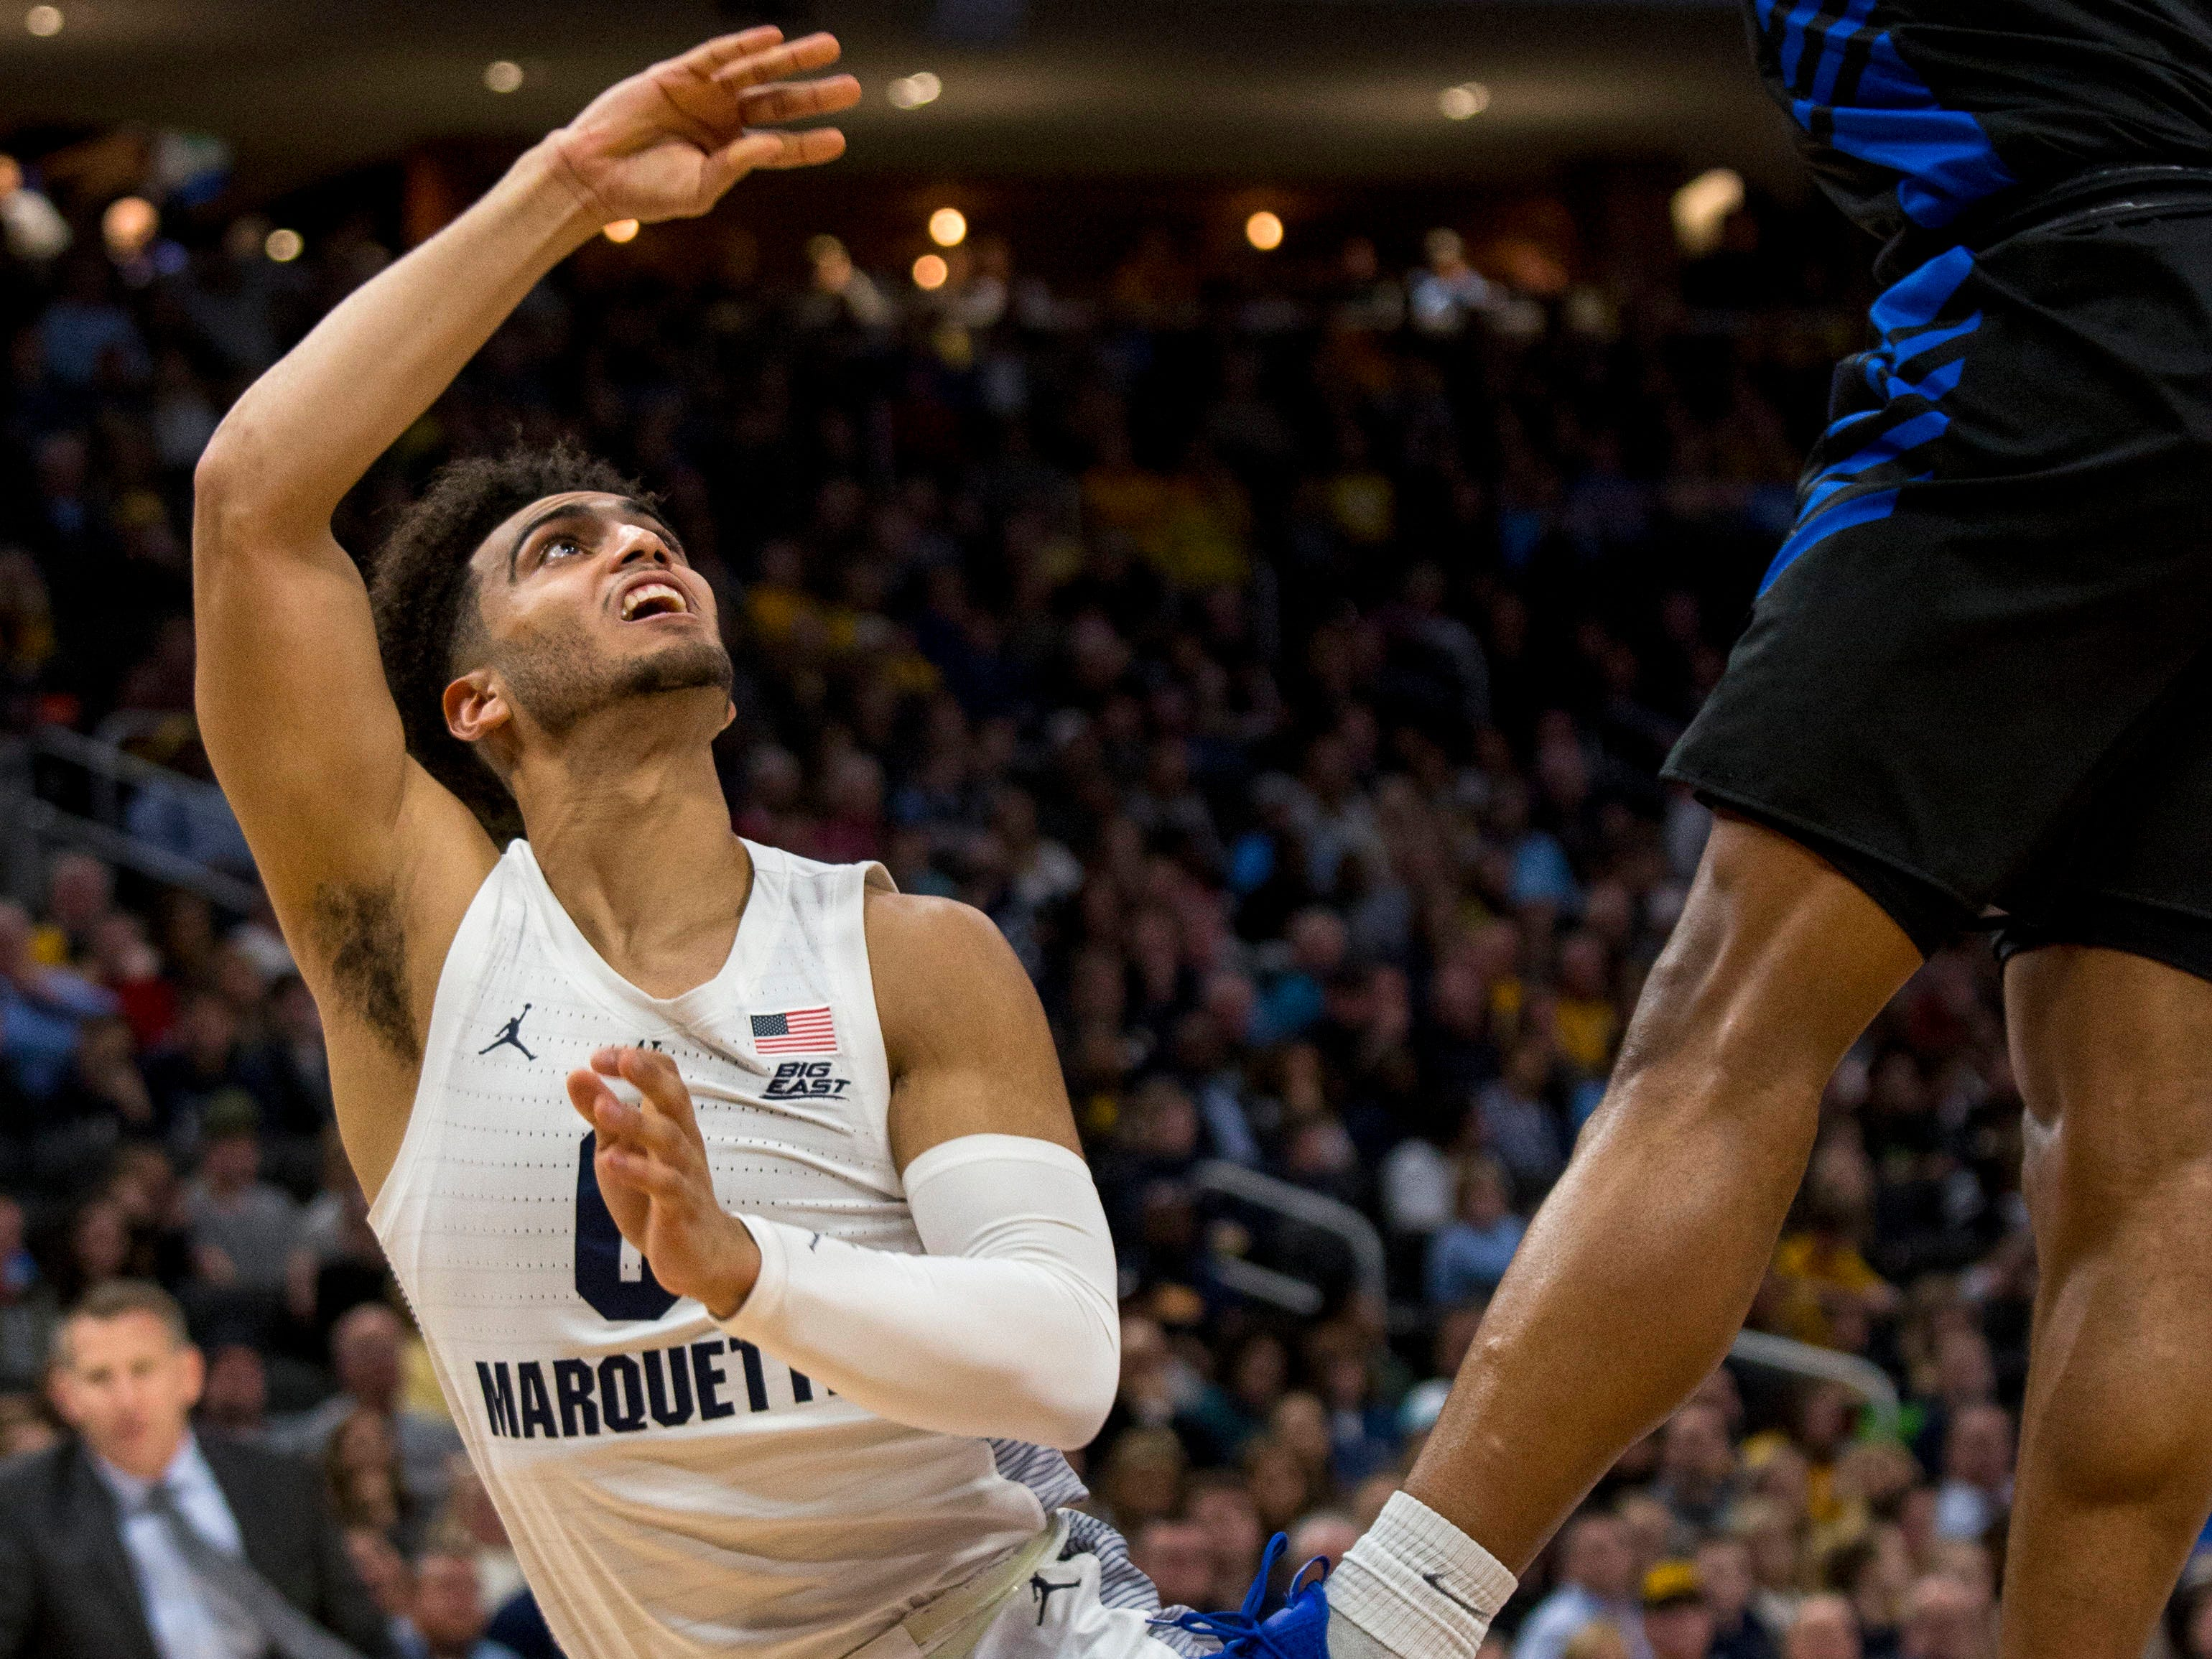 Buffalo guard Davonta Jordan blocks the shot attempt of Marquette guard Markus Howard, who had a tough first half in which he made just 1 of 7 shots on Friday night.